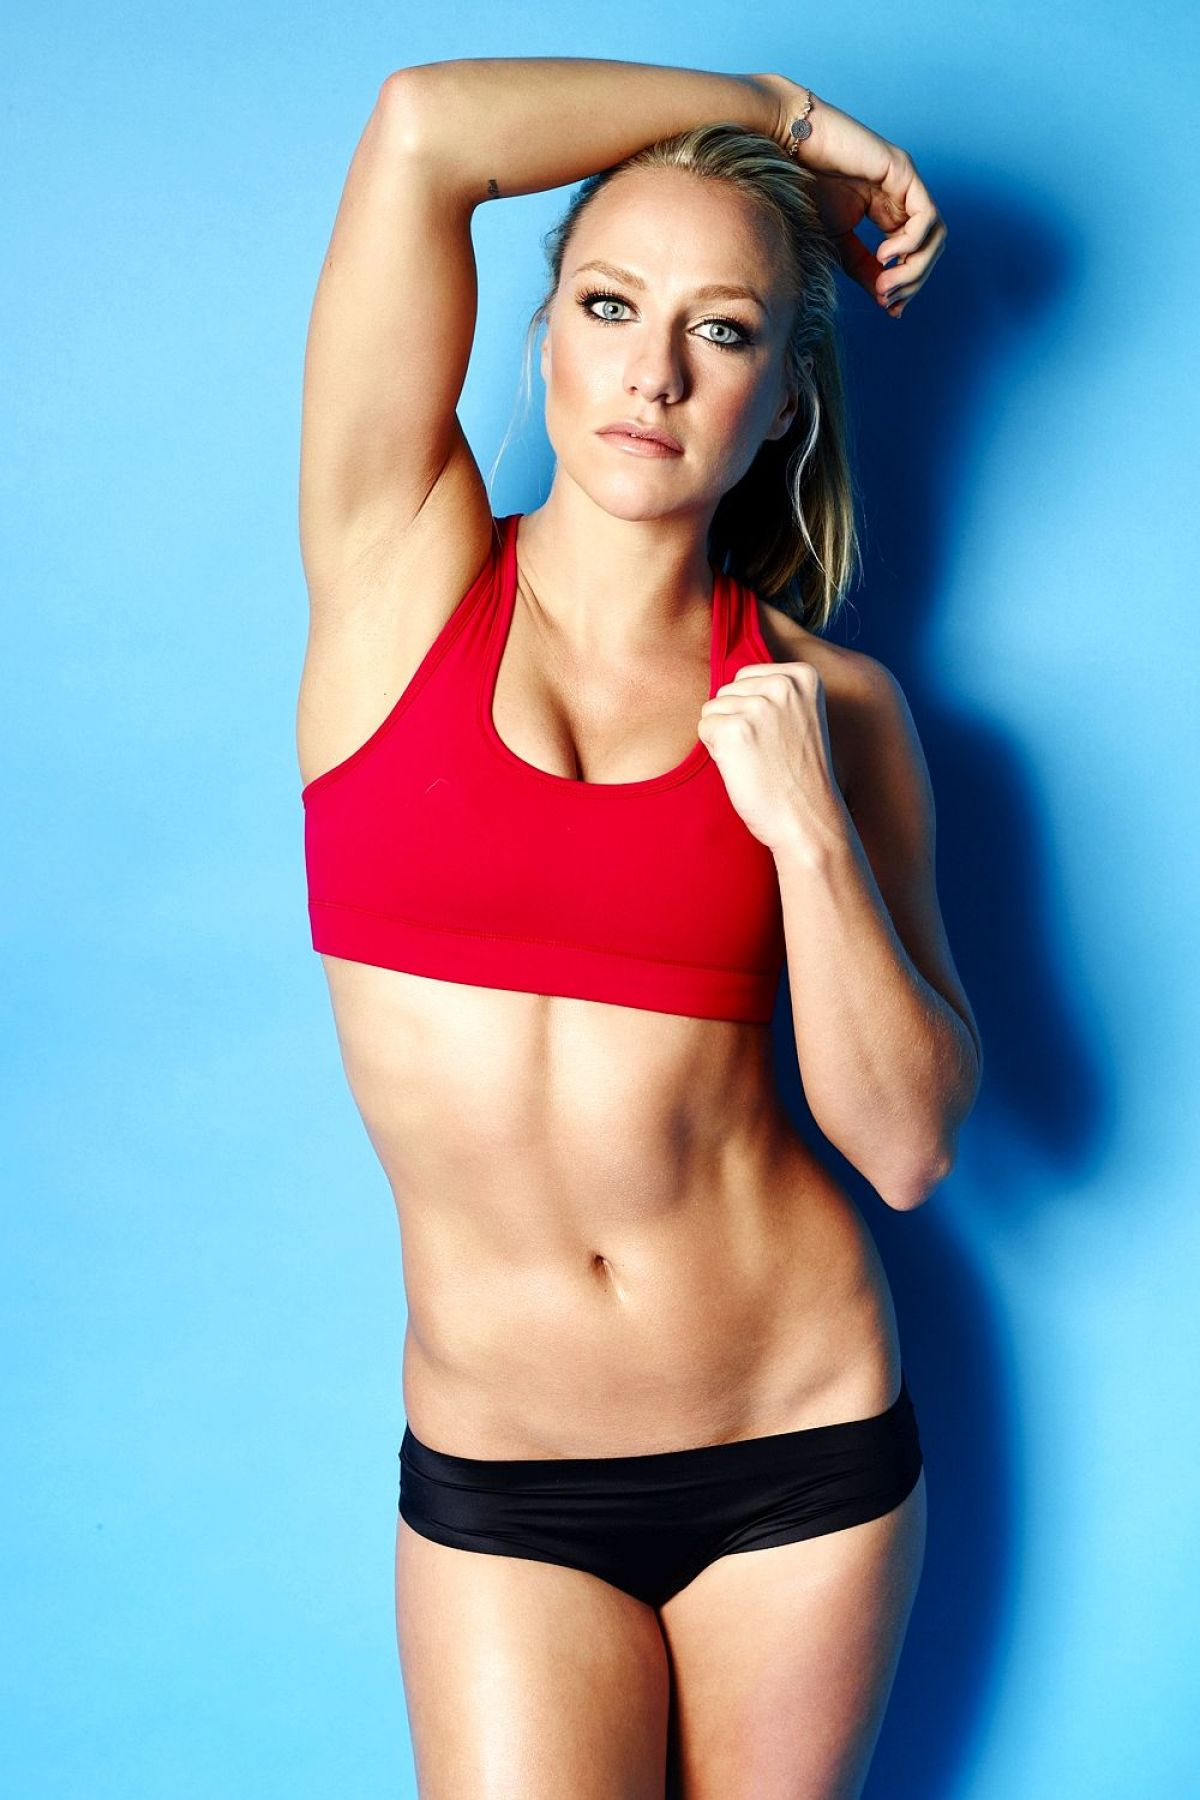 CHLOE MADELEY on the Set of a Workout Photoshoot